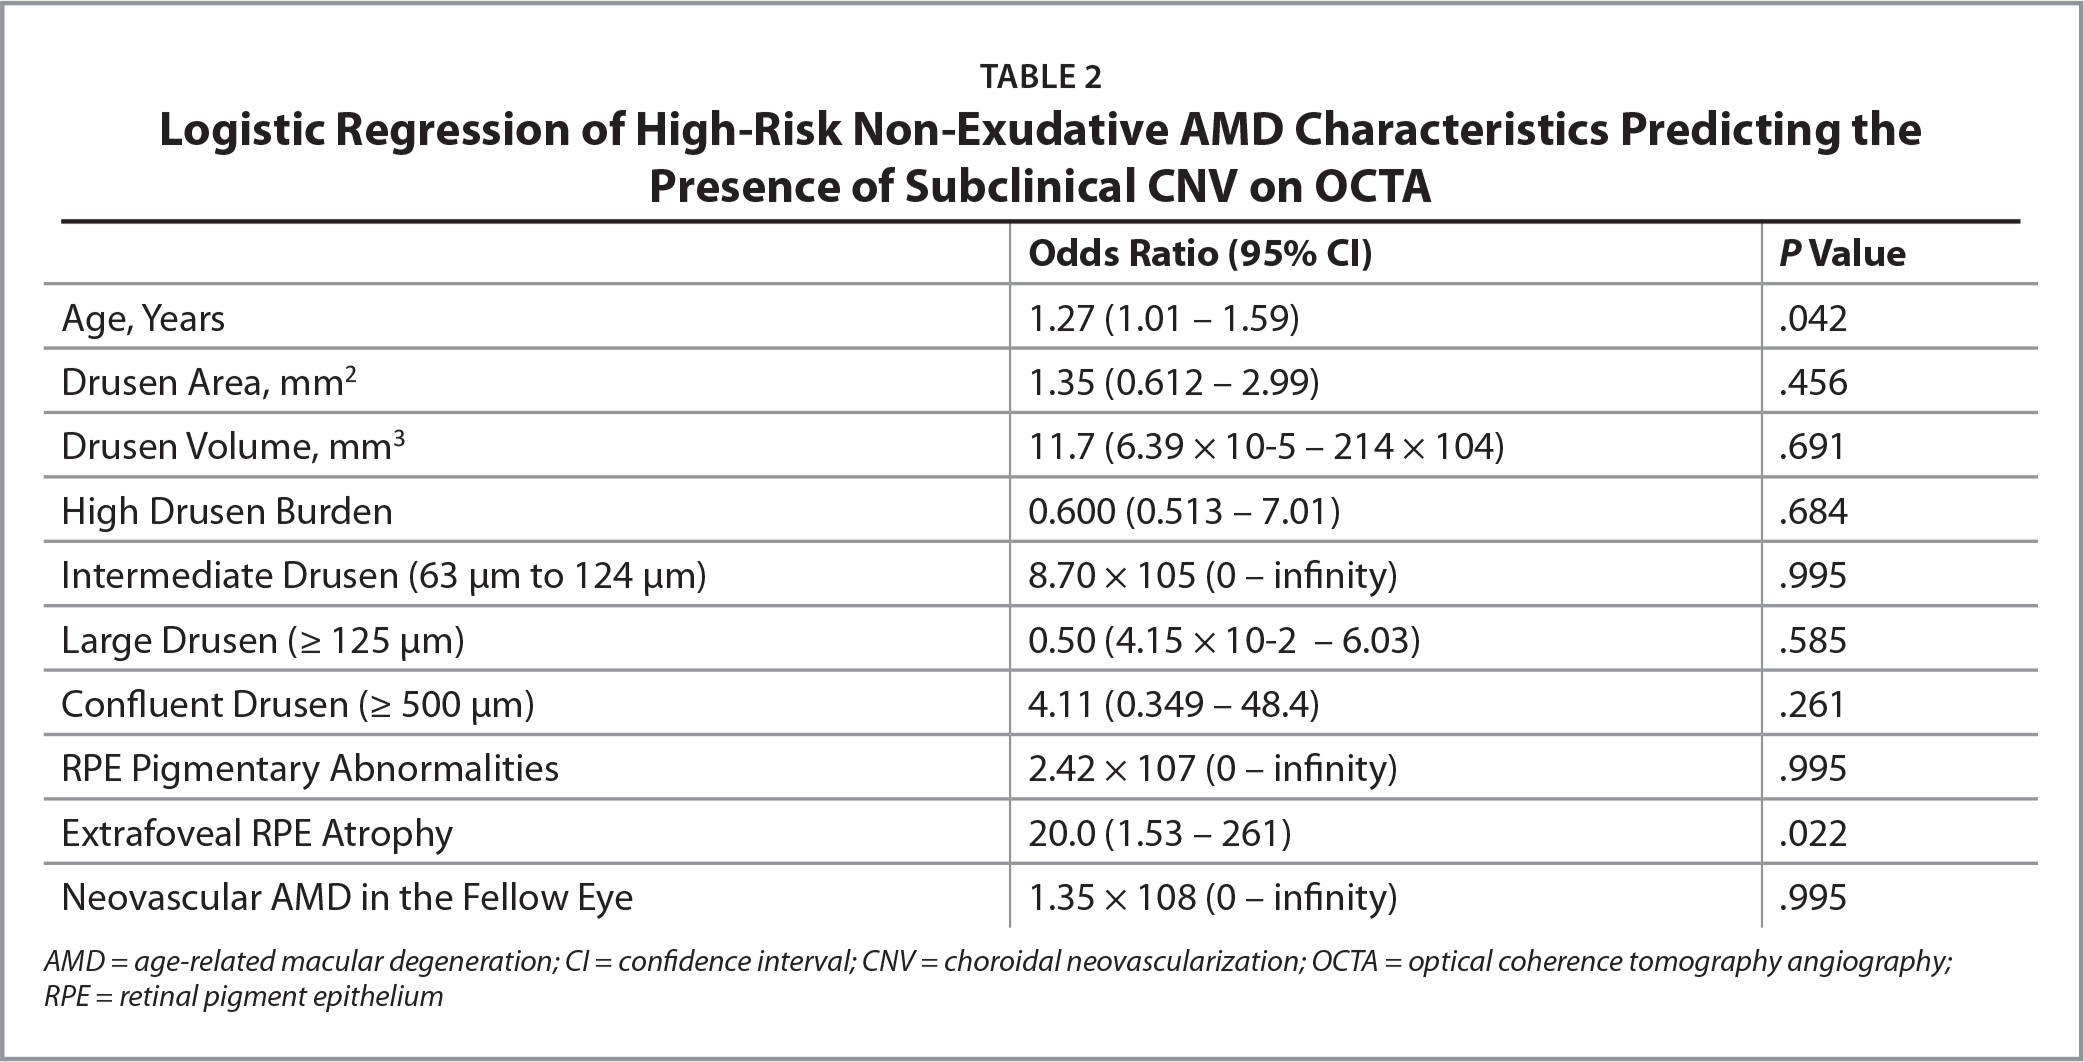 Logistic Regression of High-Risk Non-Exudative AMD Characteristics Predicting the Presence of Subclinical CNV on OCTA